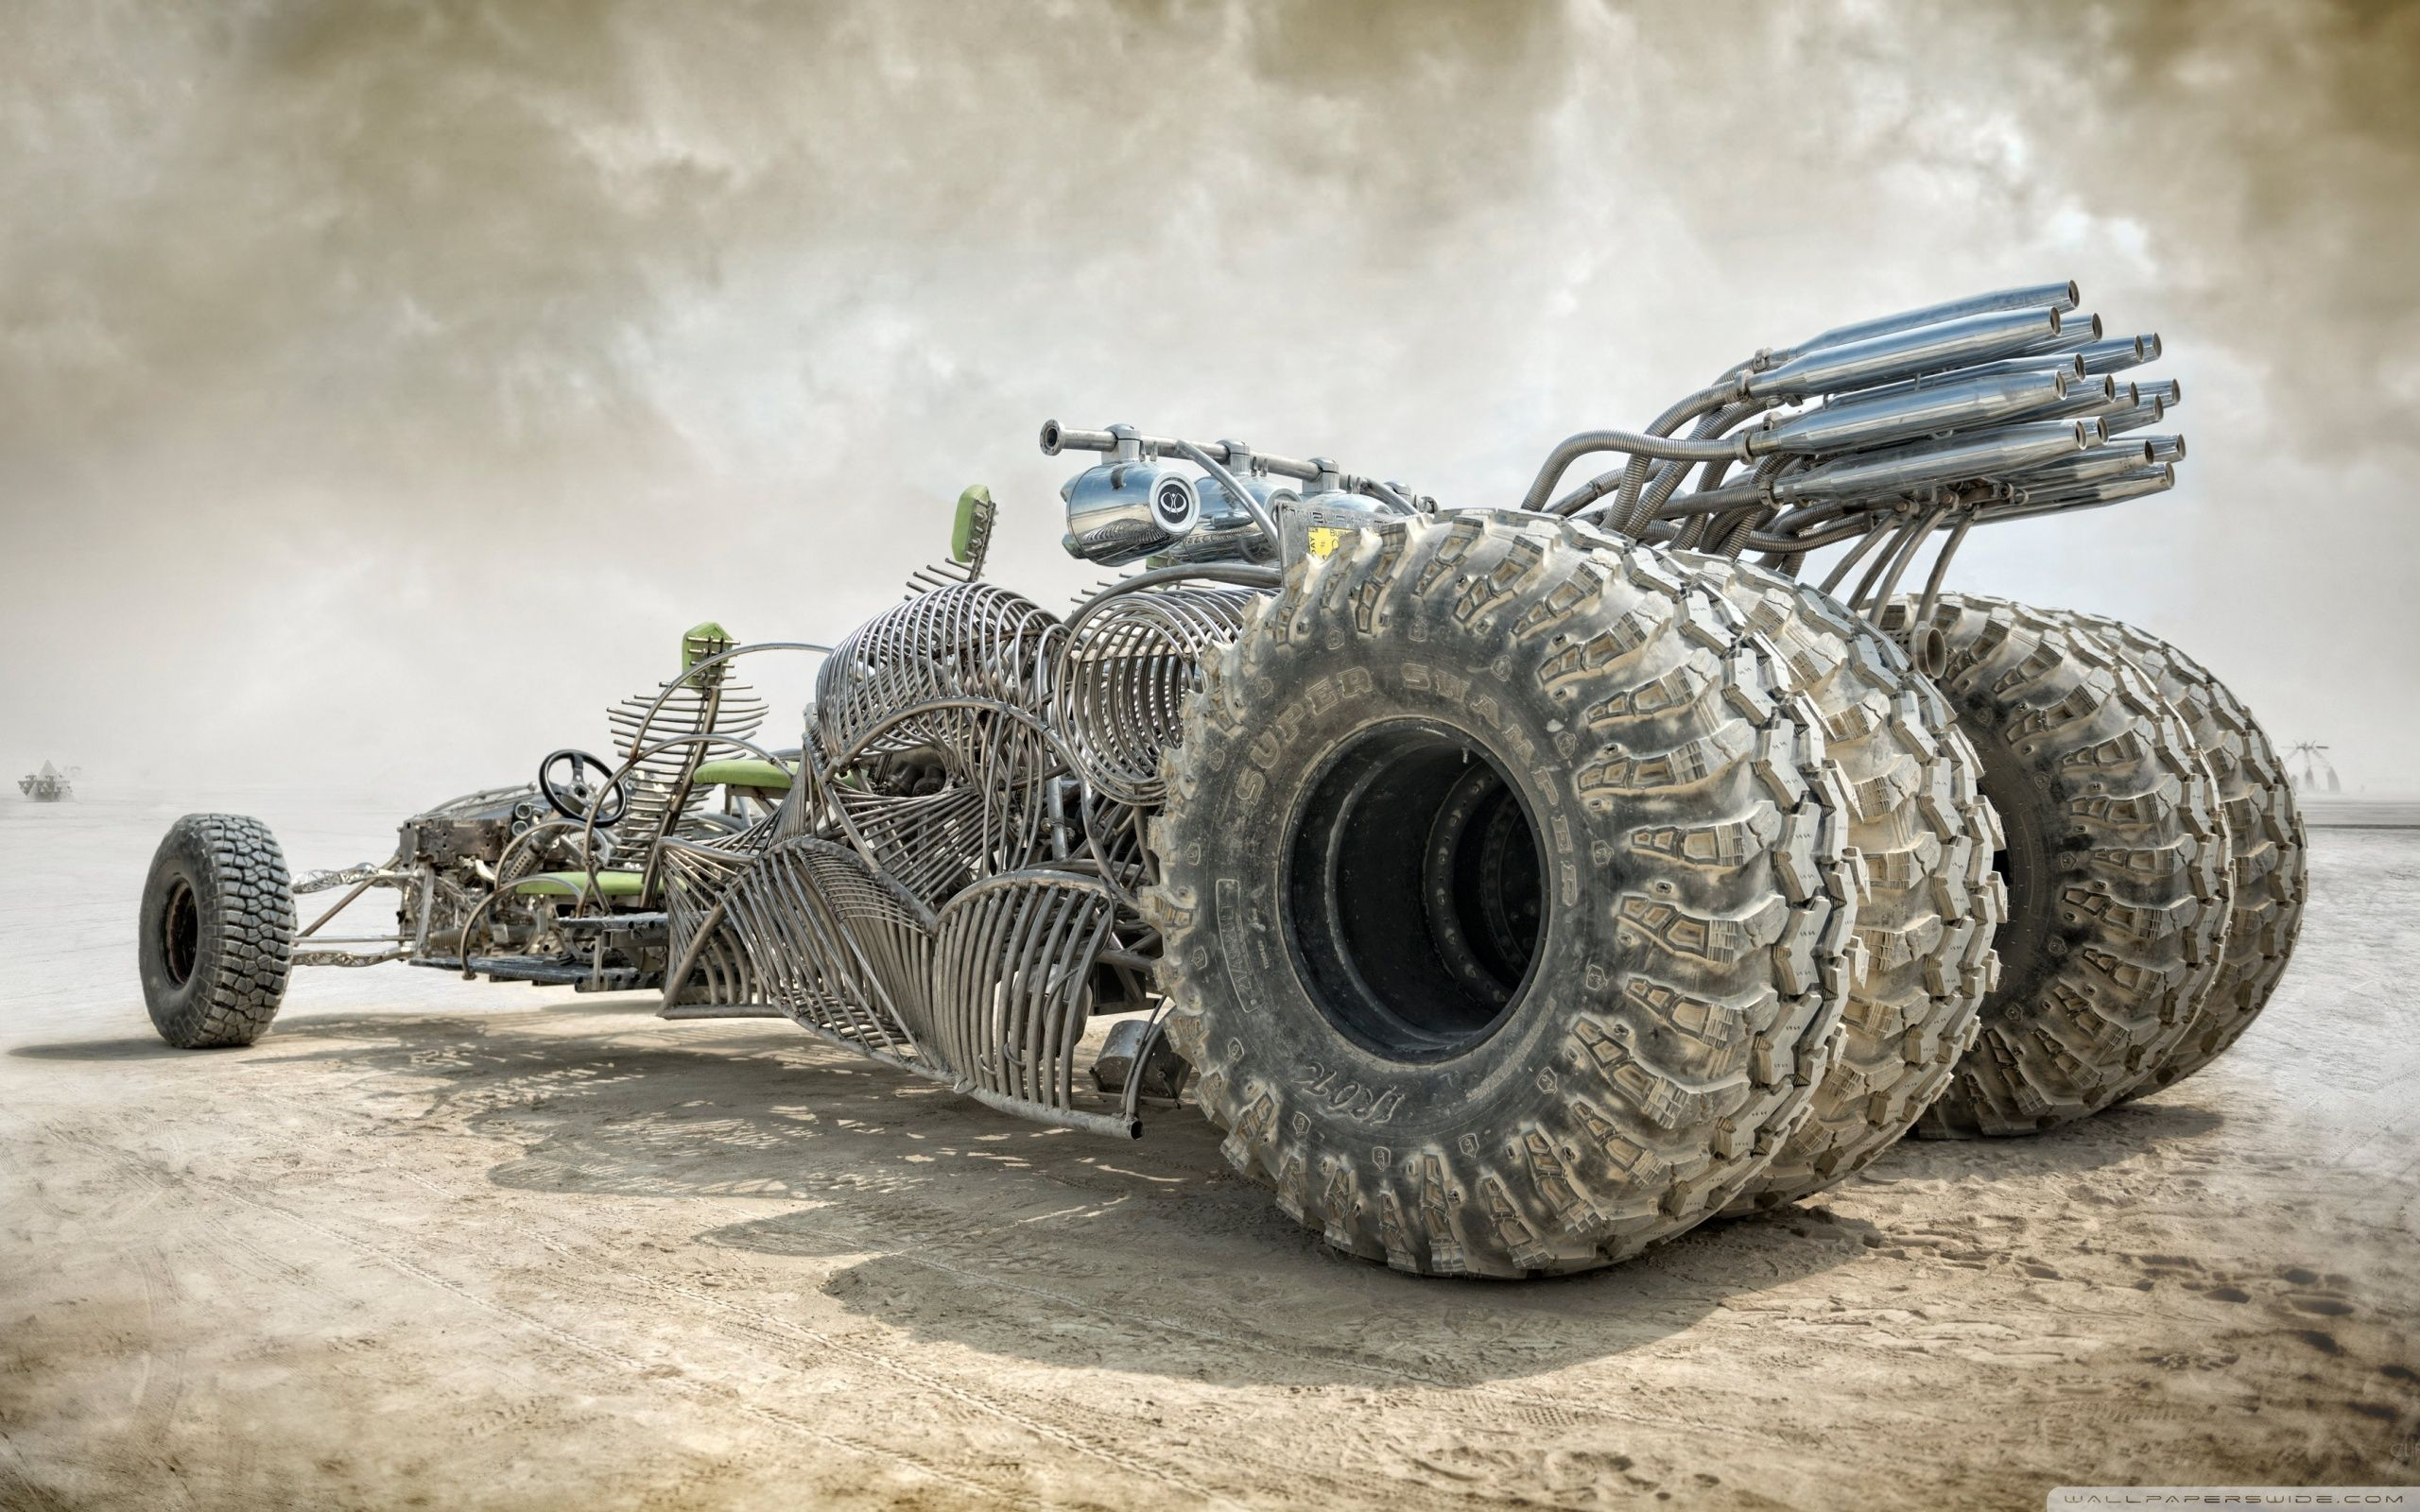 Atv offroad fury wallpapers video game hq atv offroad fury 3d atv offroad fury wallpapers video game hq atv offroad fury voltagebd Image collections